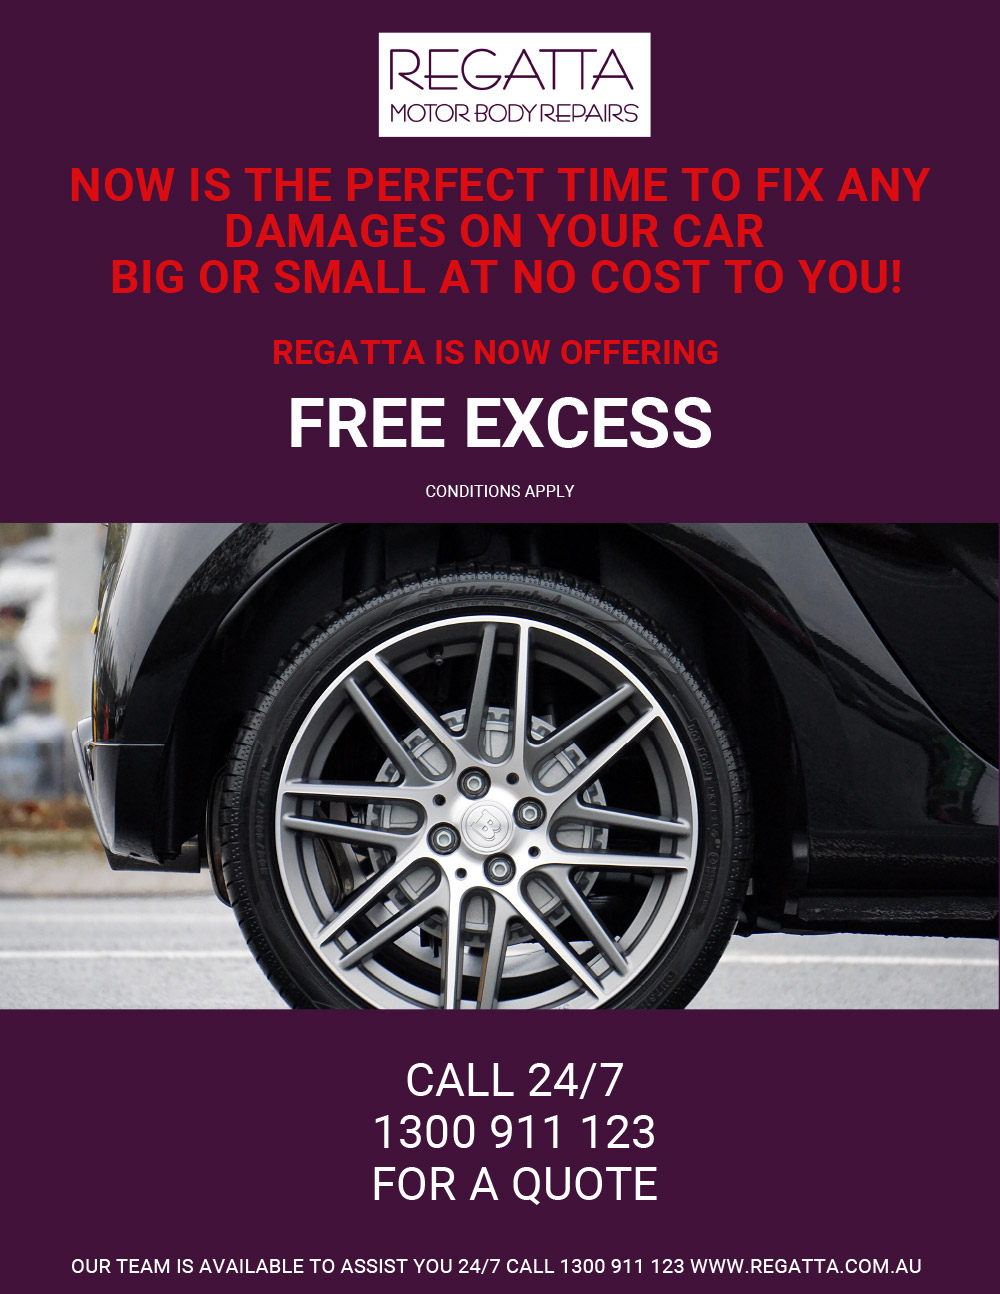 Free Excess Offer